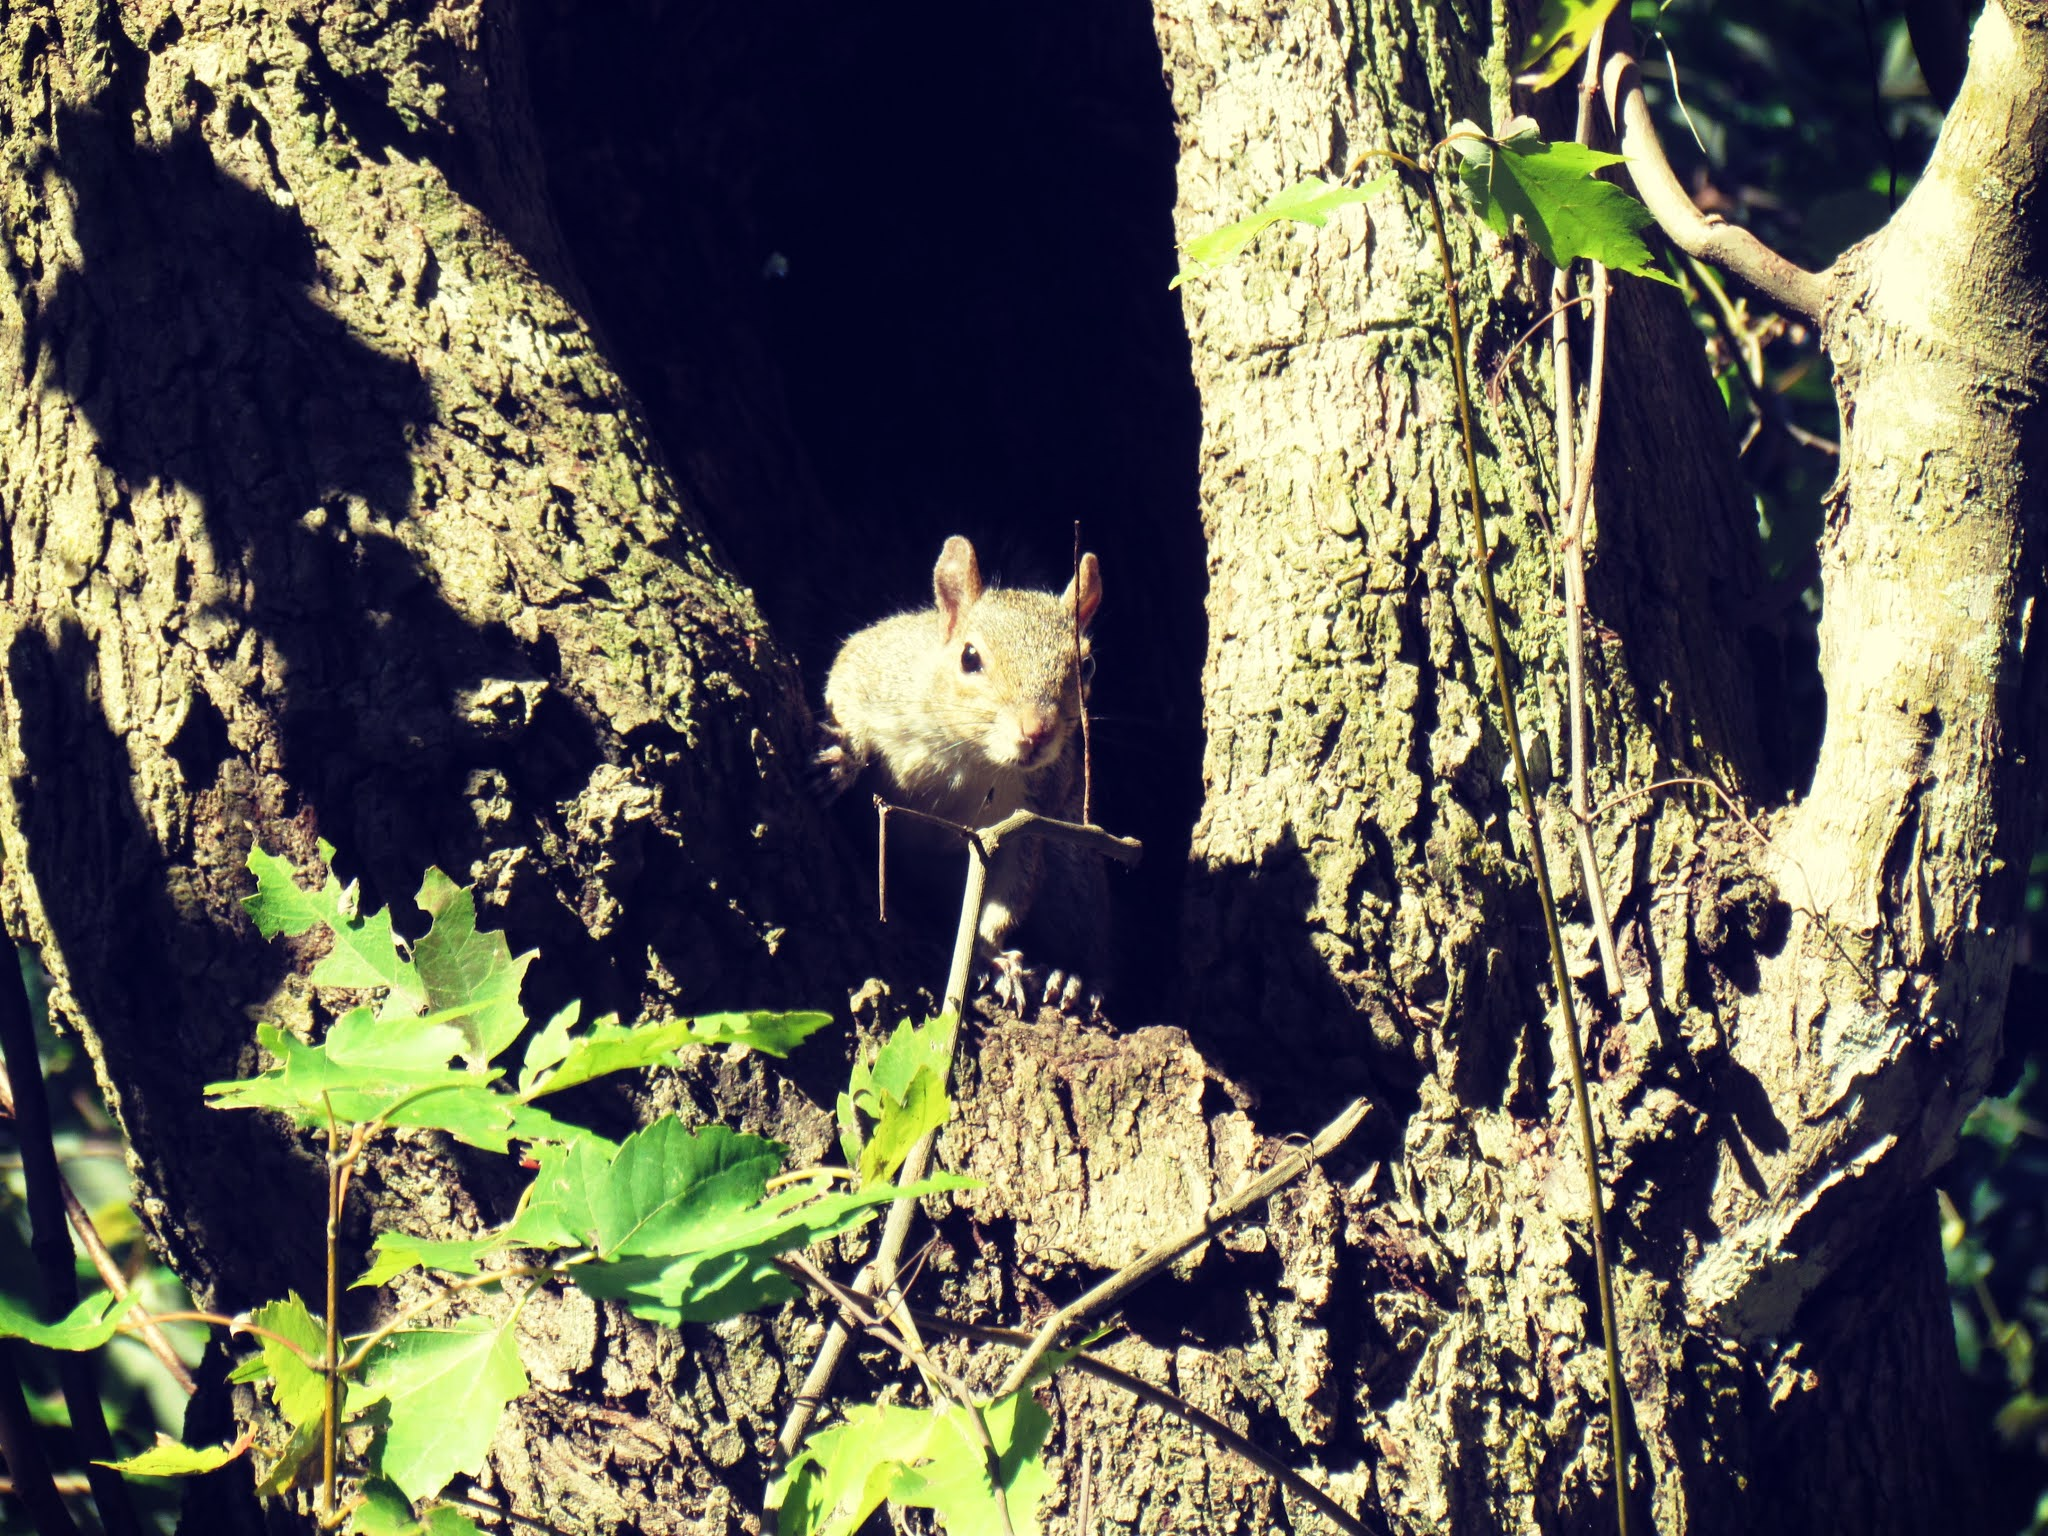 A Florida squirrel peeking his head out from a hollow in a tree in mother nature + Shadow lighting